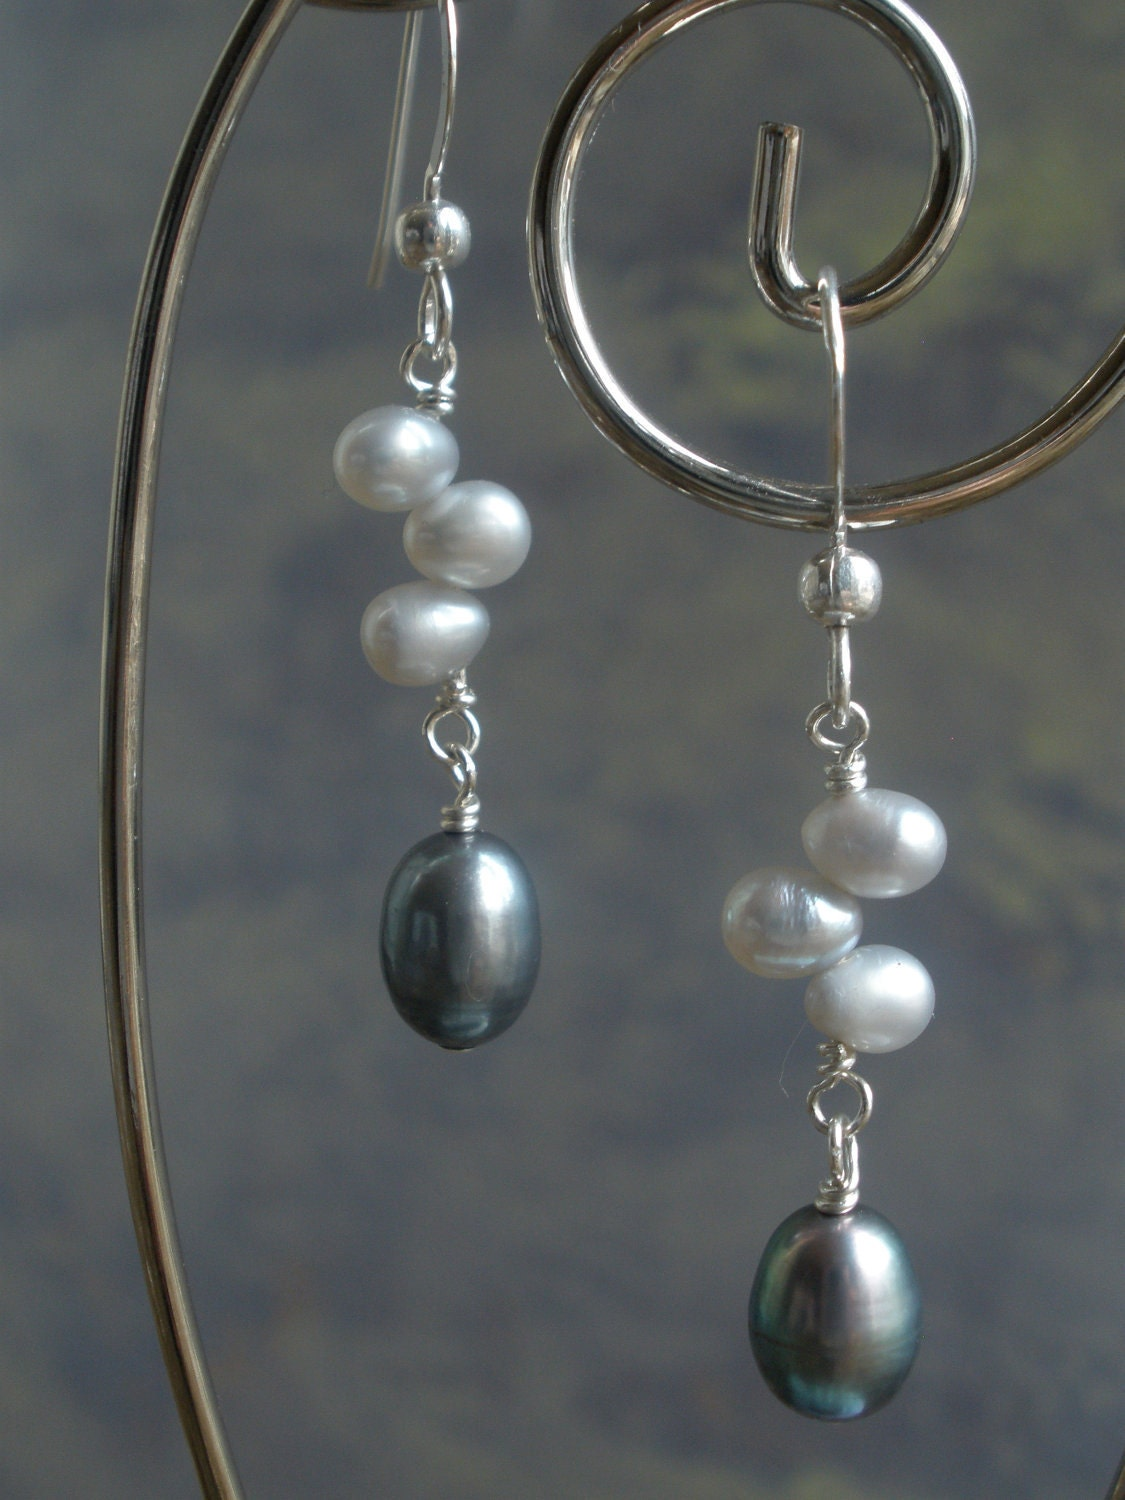 Pale Blue & Warm Gray Freshwater Pearl Earrings on Sterling Silver Earwires - deannaross